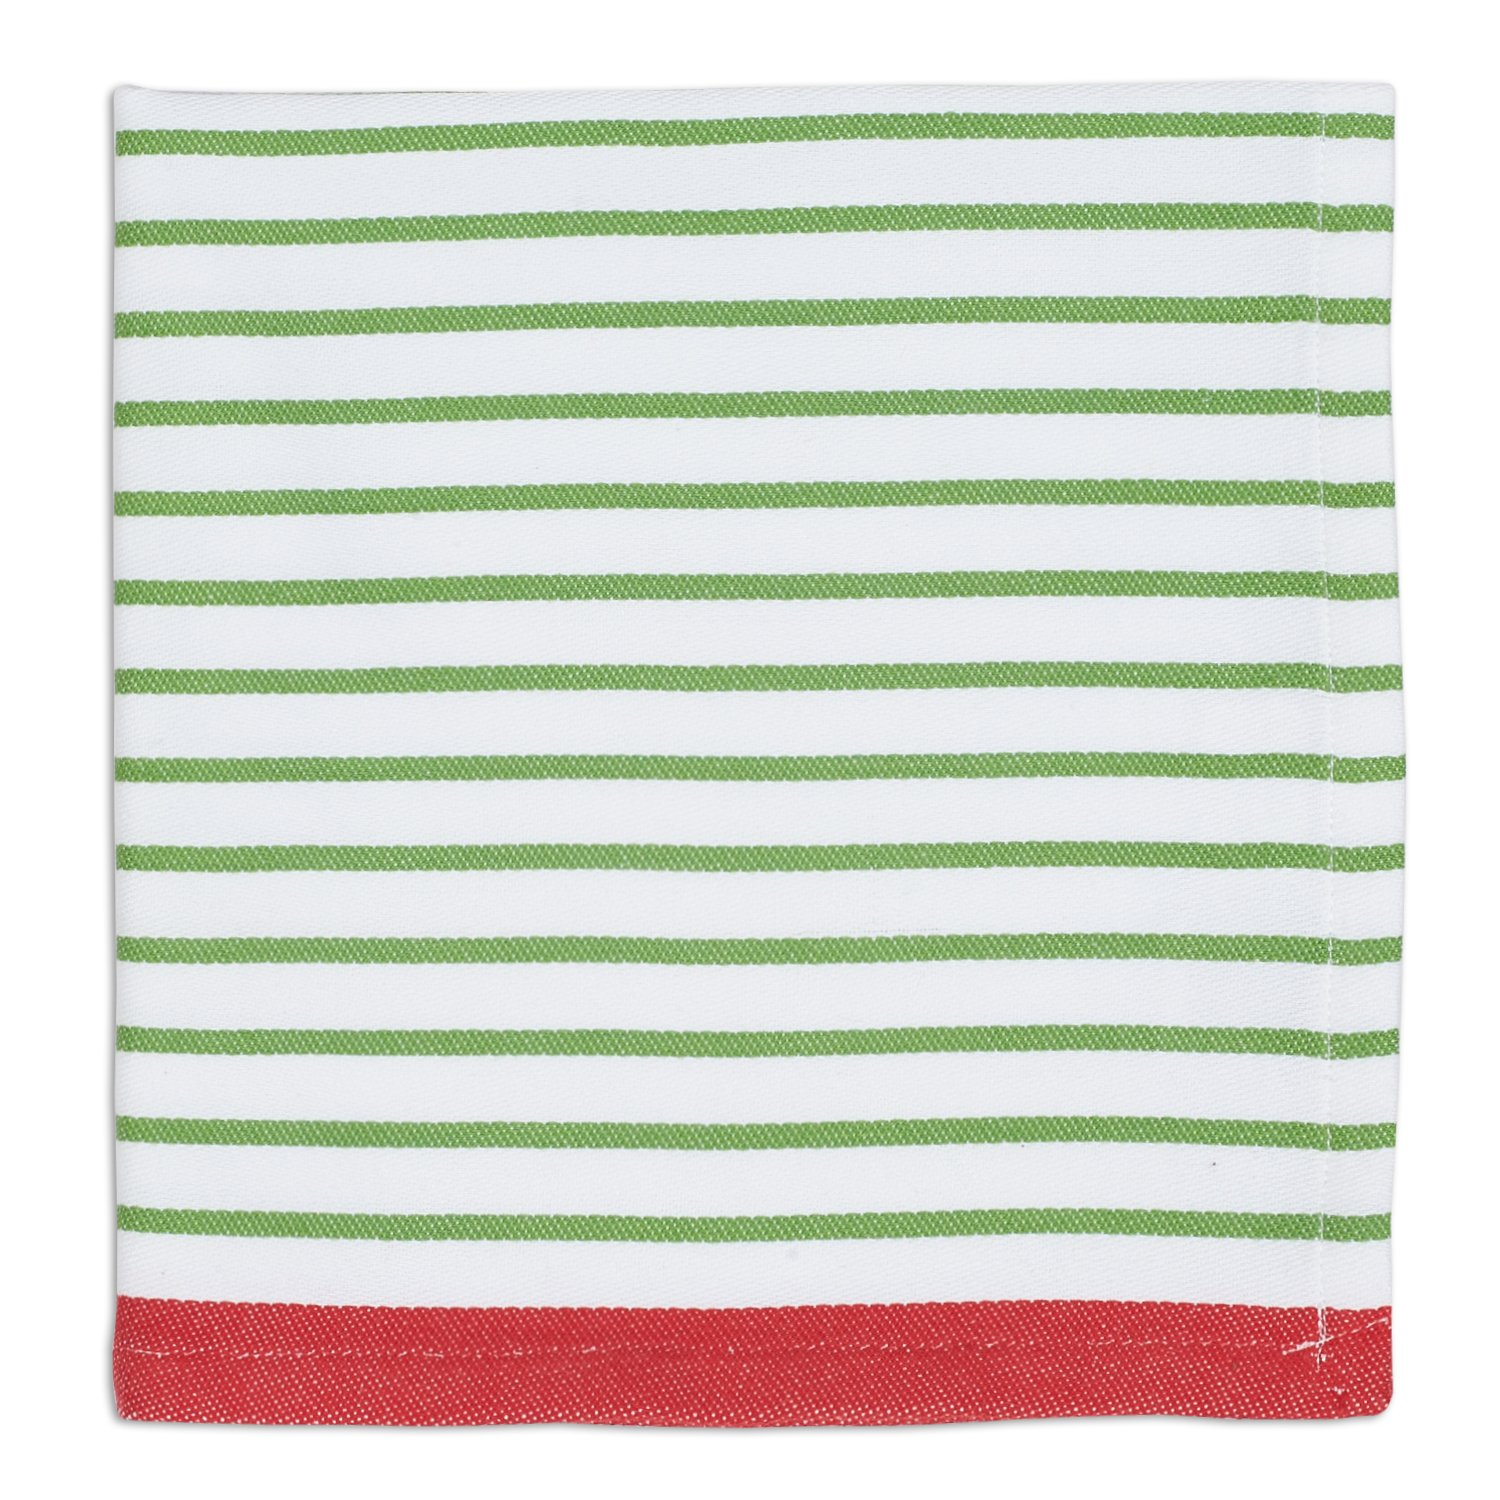 DII Oversized 20x20'' Cotton Napkin, Pack of 6, Pine Needle Stripe - Perfect for Fall, Thanksgiving, Dinner Parties, Farmhouse Décor, Christmas or Everyday Use